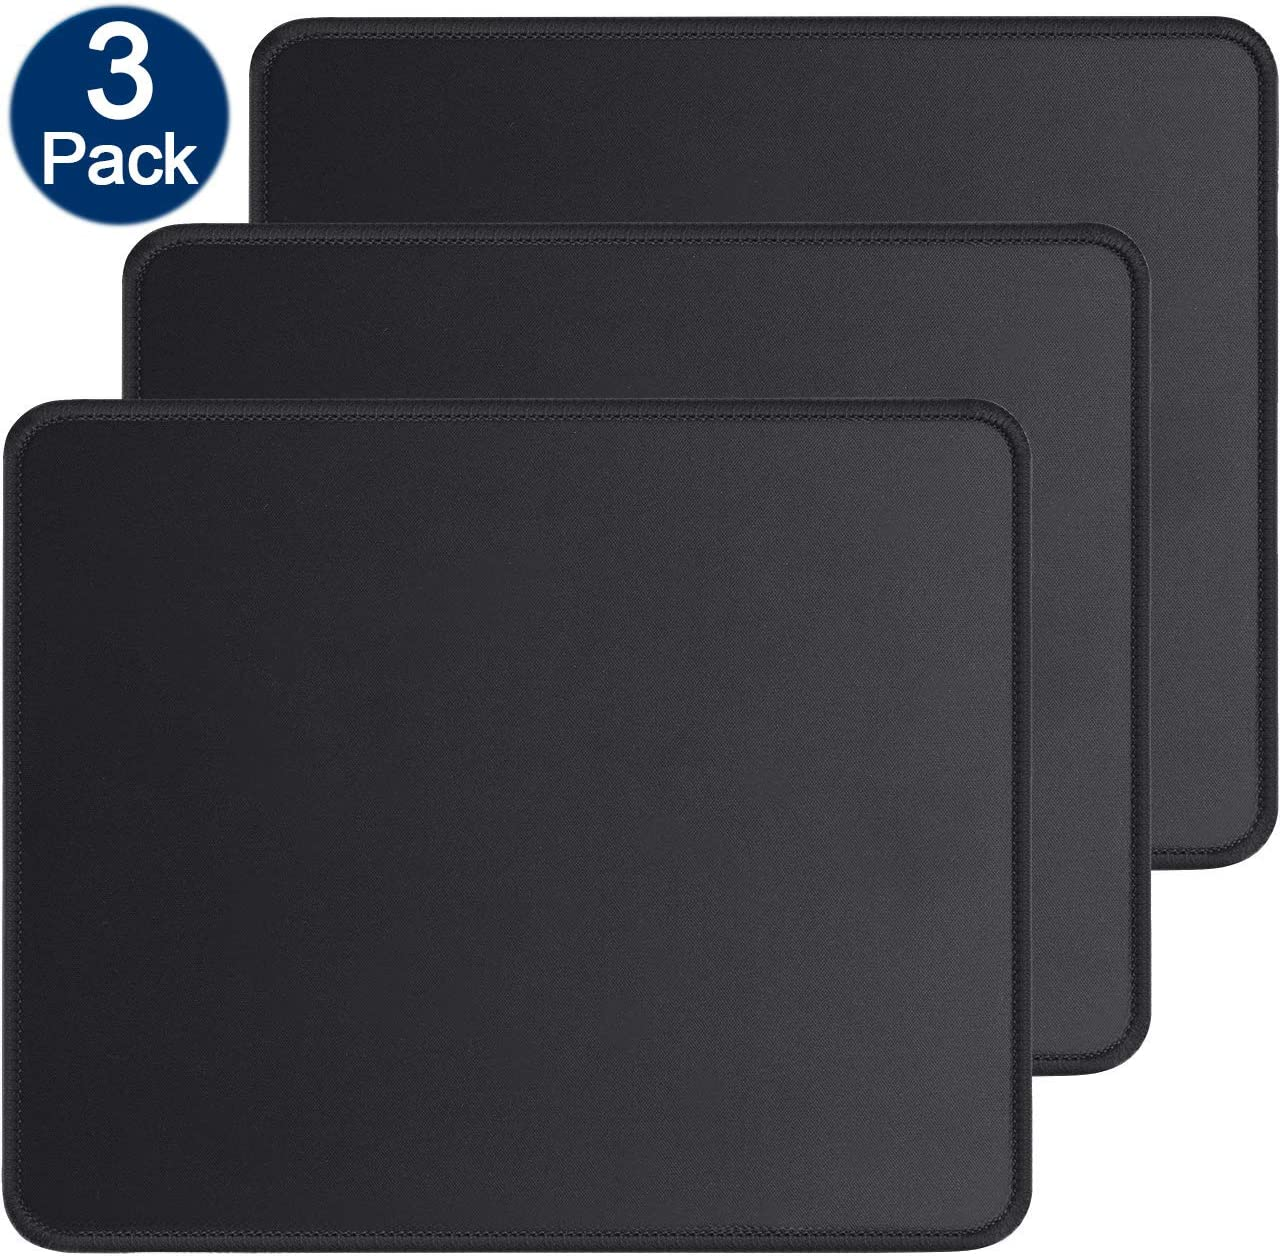 Gaming Mouse Pad Stitched Edges Mousepad Non-Slip Rubber Base Black 3-Pack